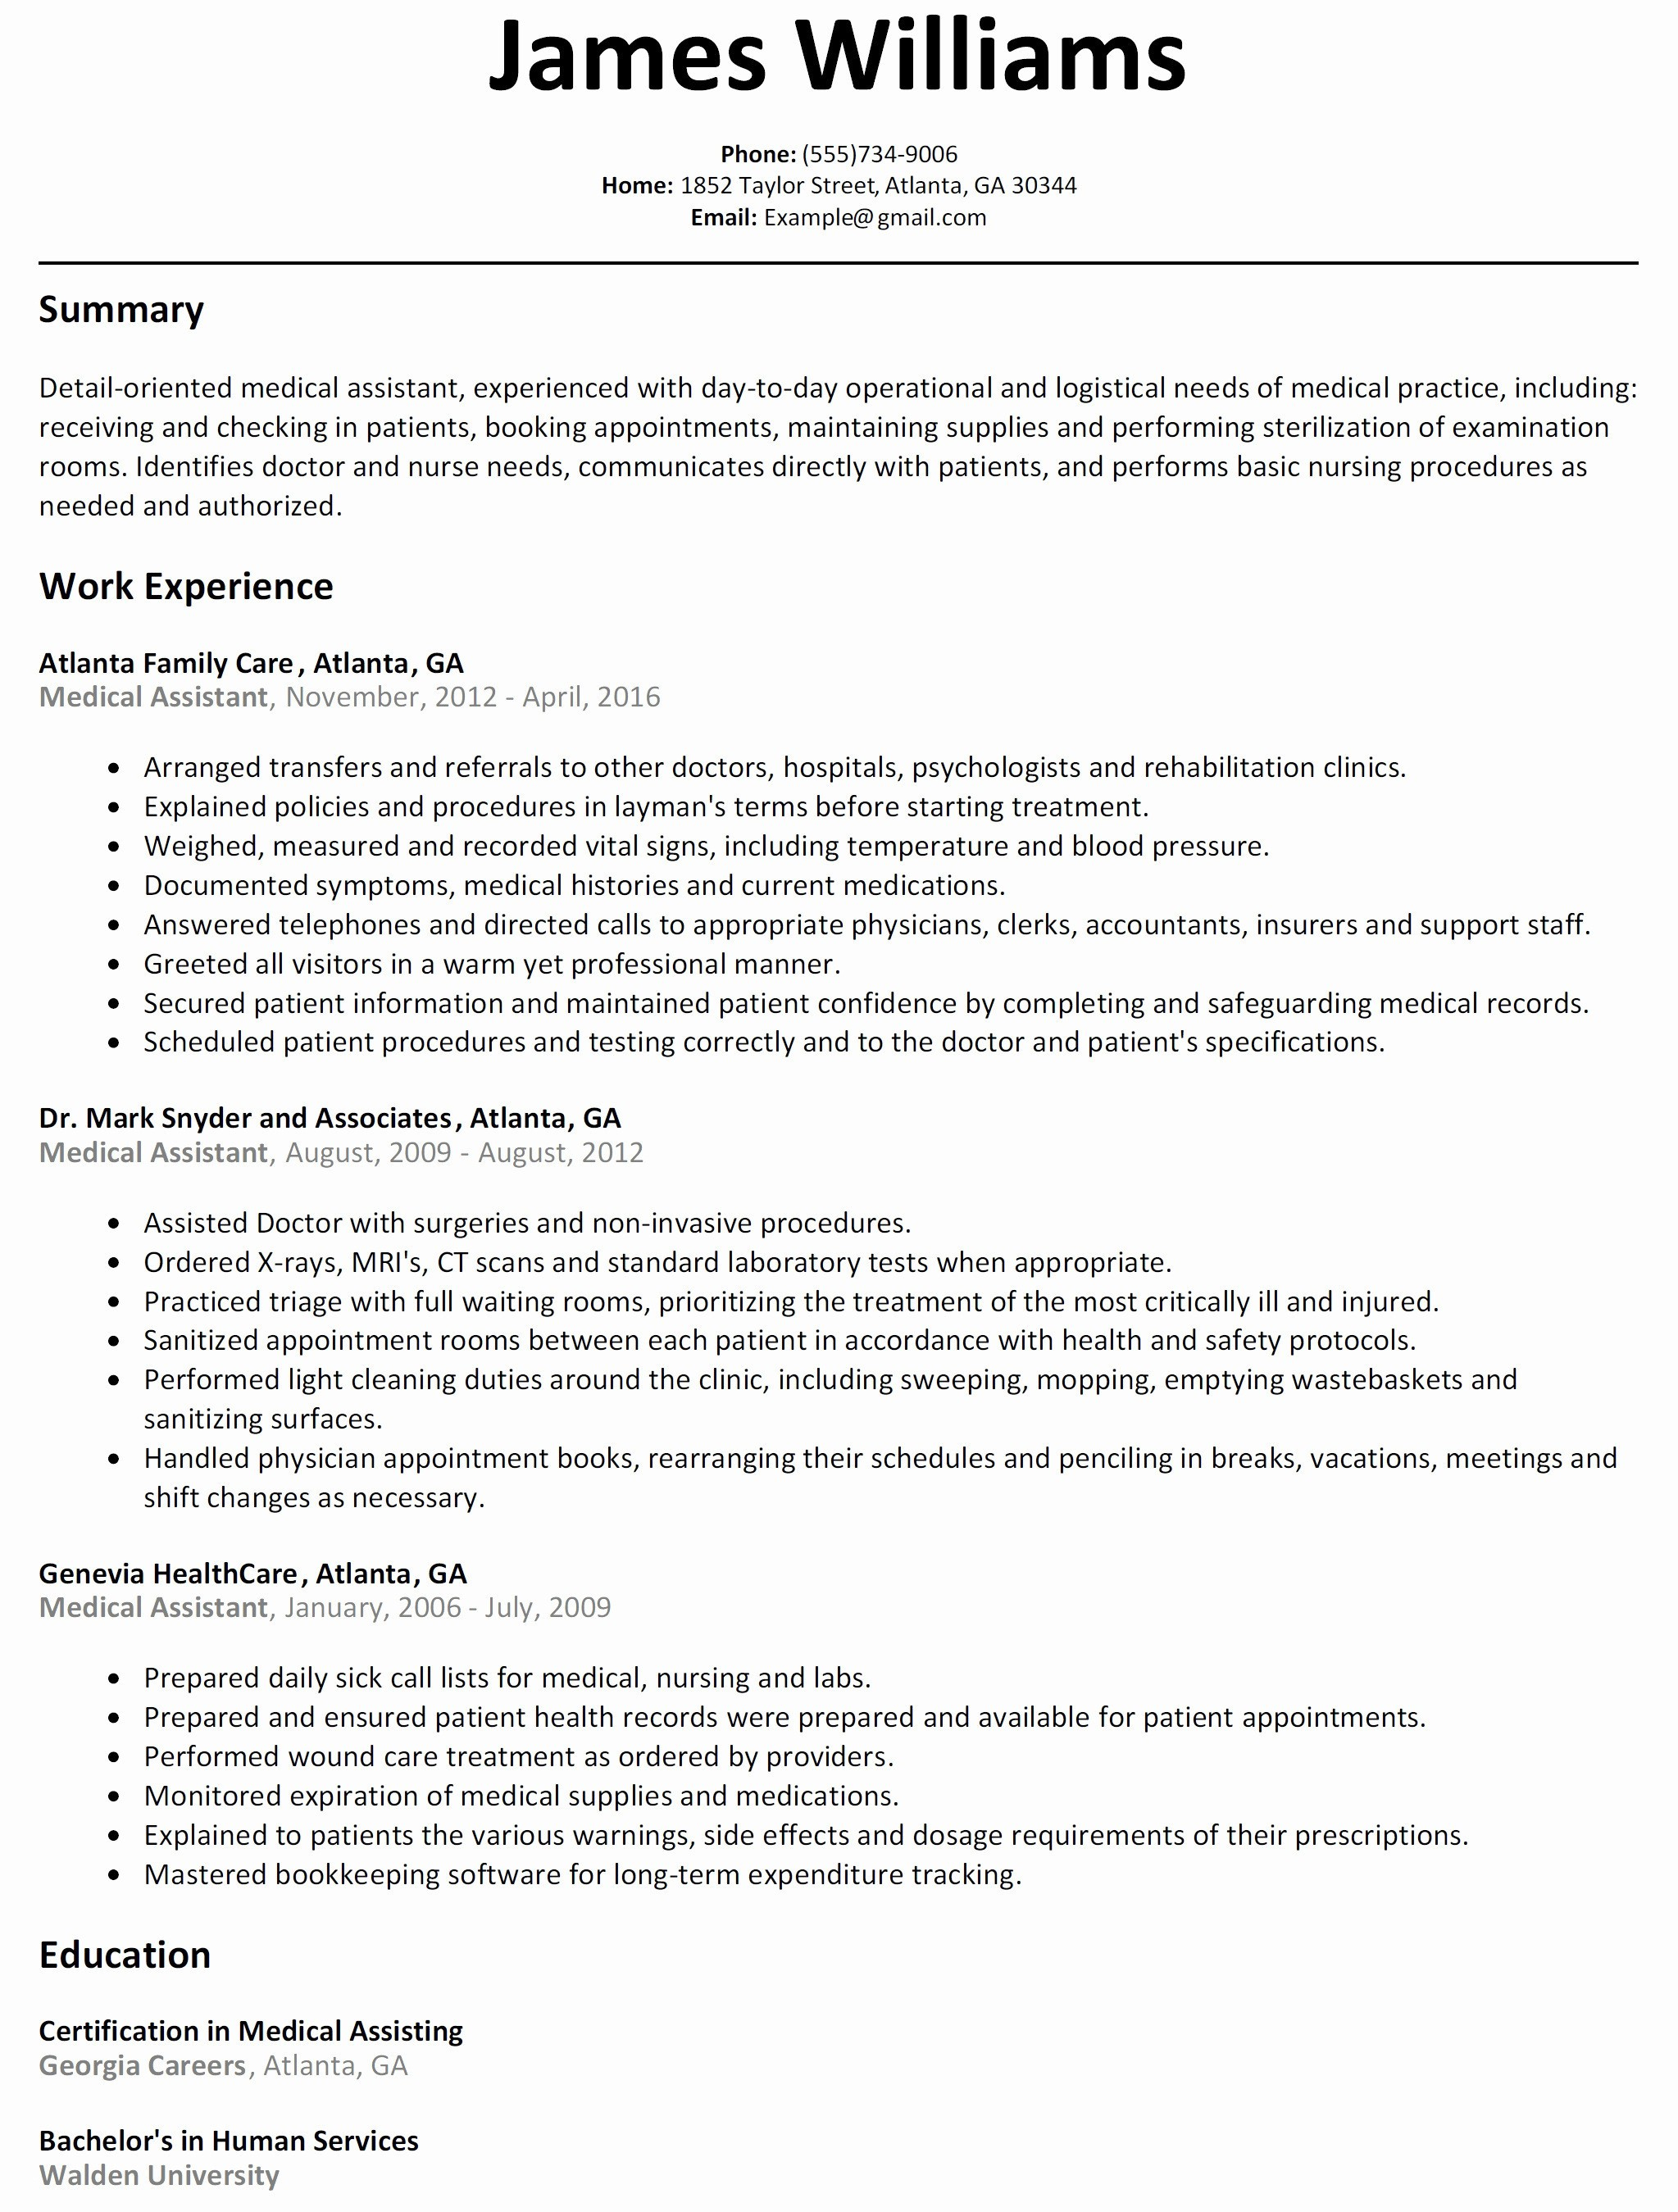 Resume with References - References Resume Unique Insurance Resumes Example Bsw Resume 0d